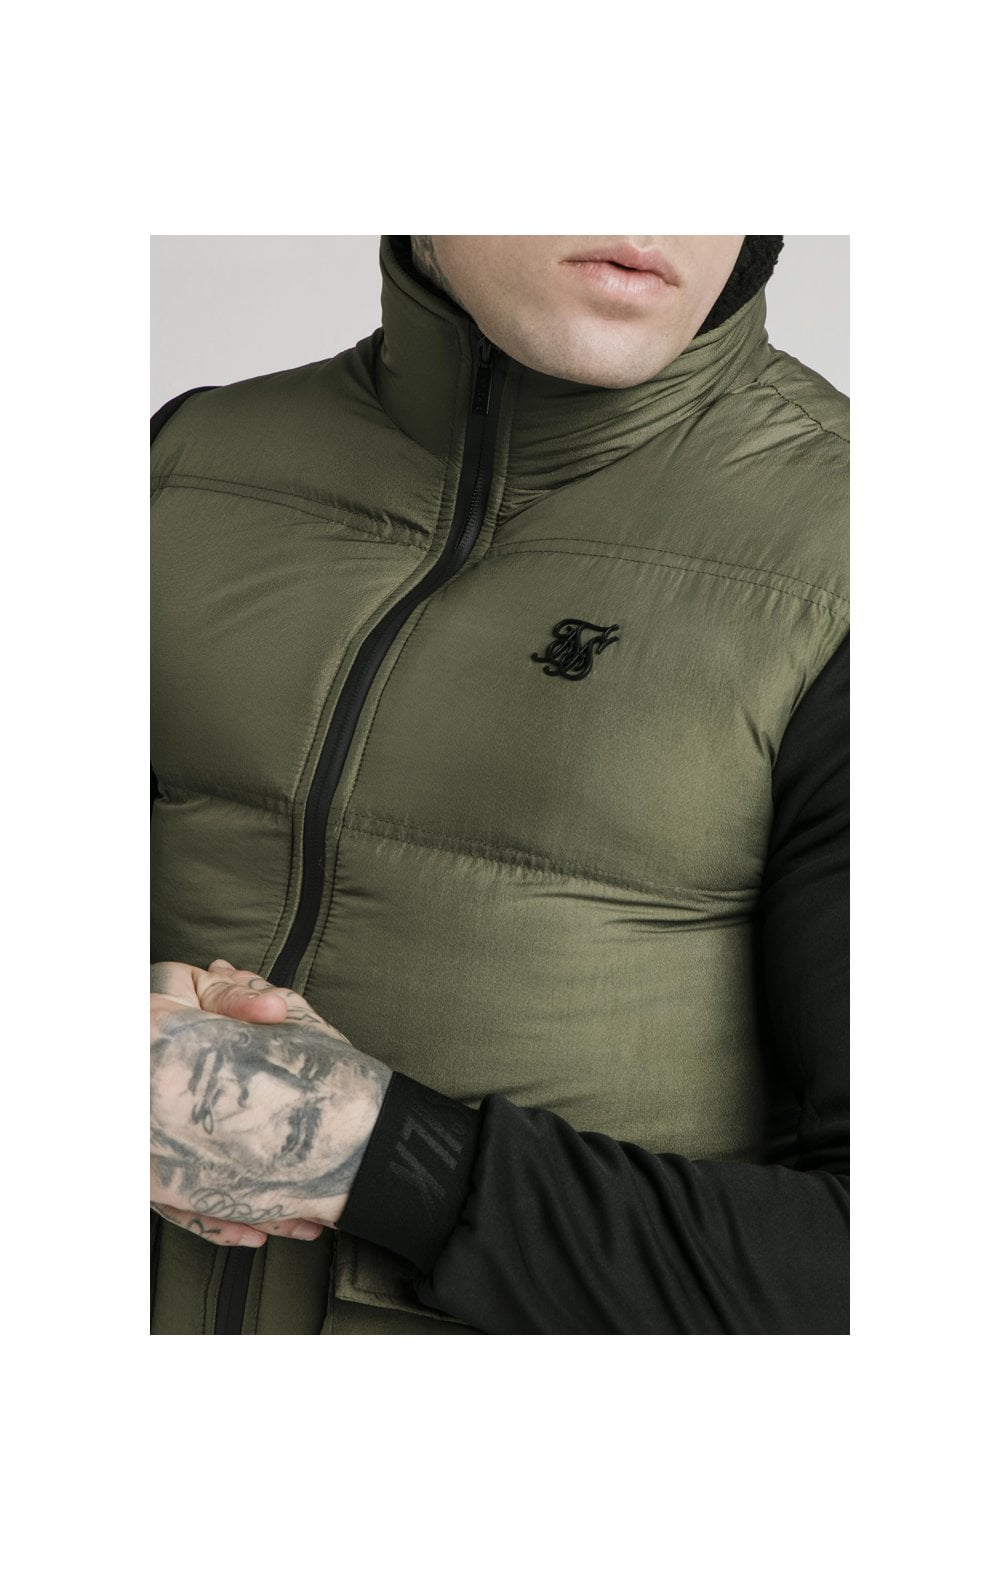 Load image into Gallery viewer, SikSilk Neo Instinct - Khaki (1)